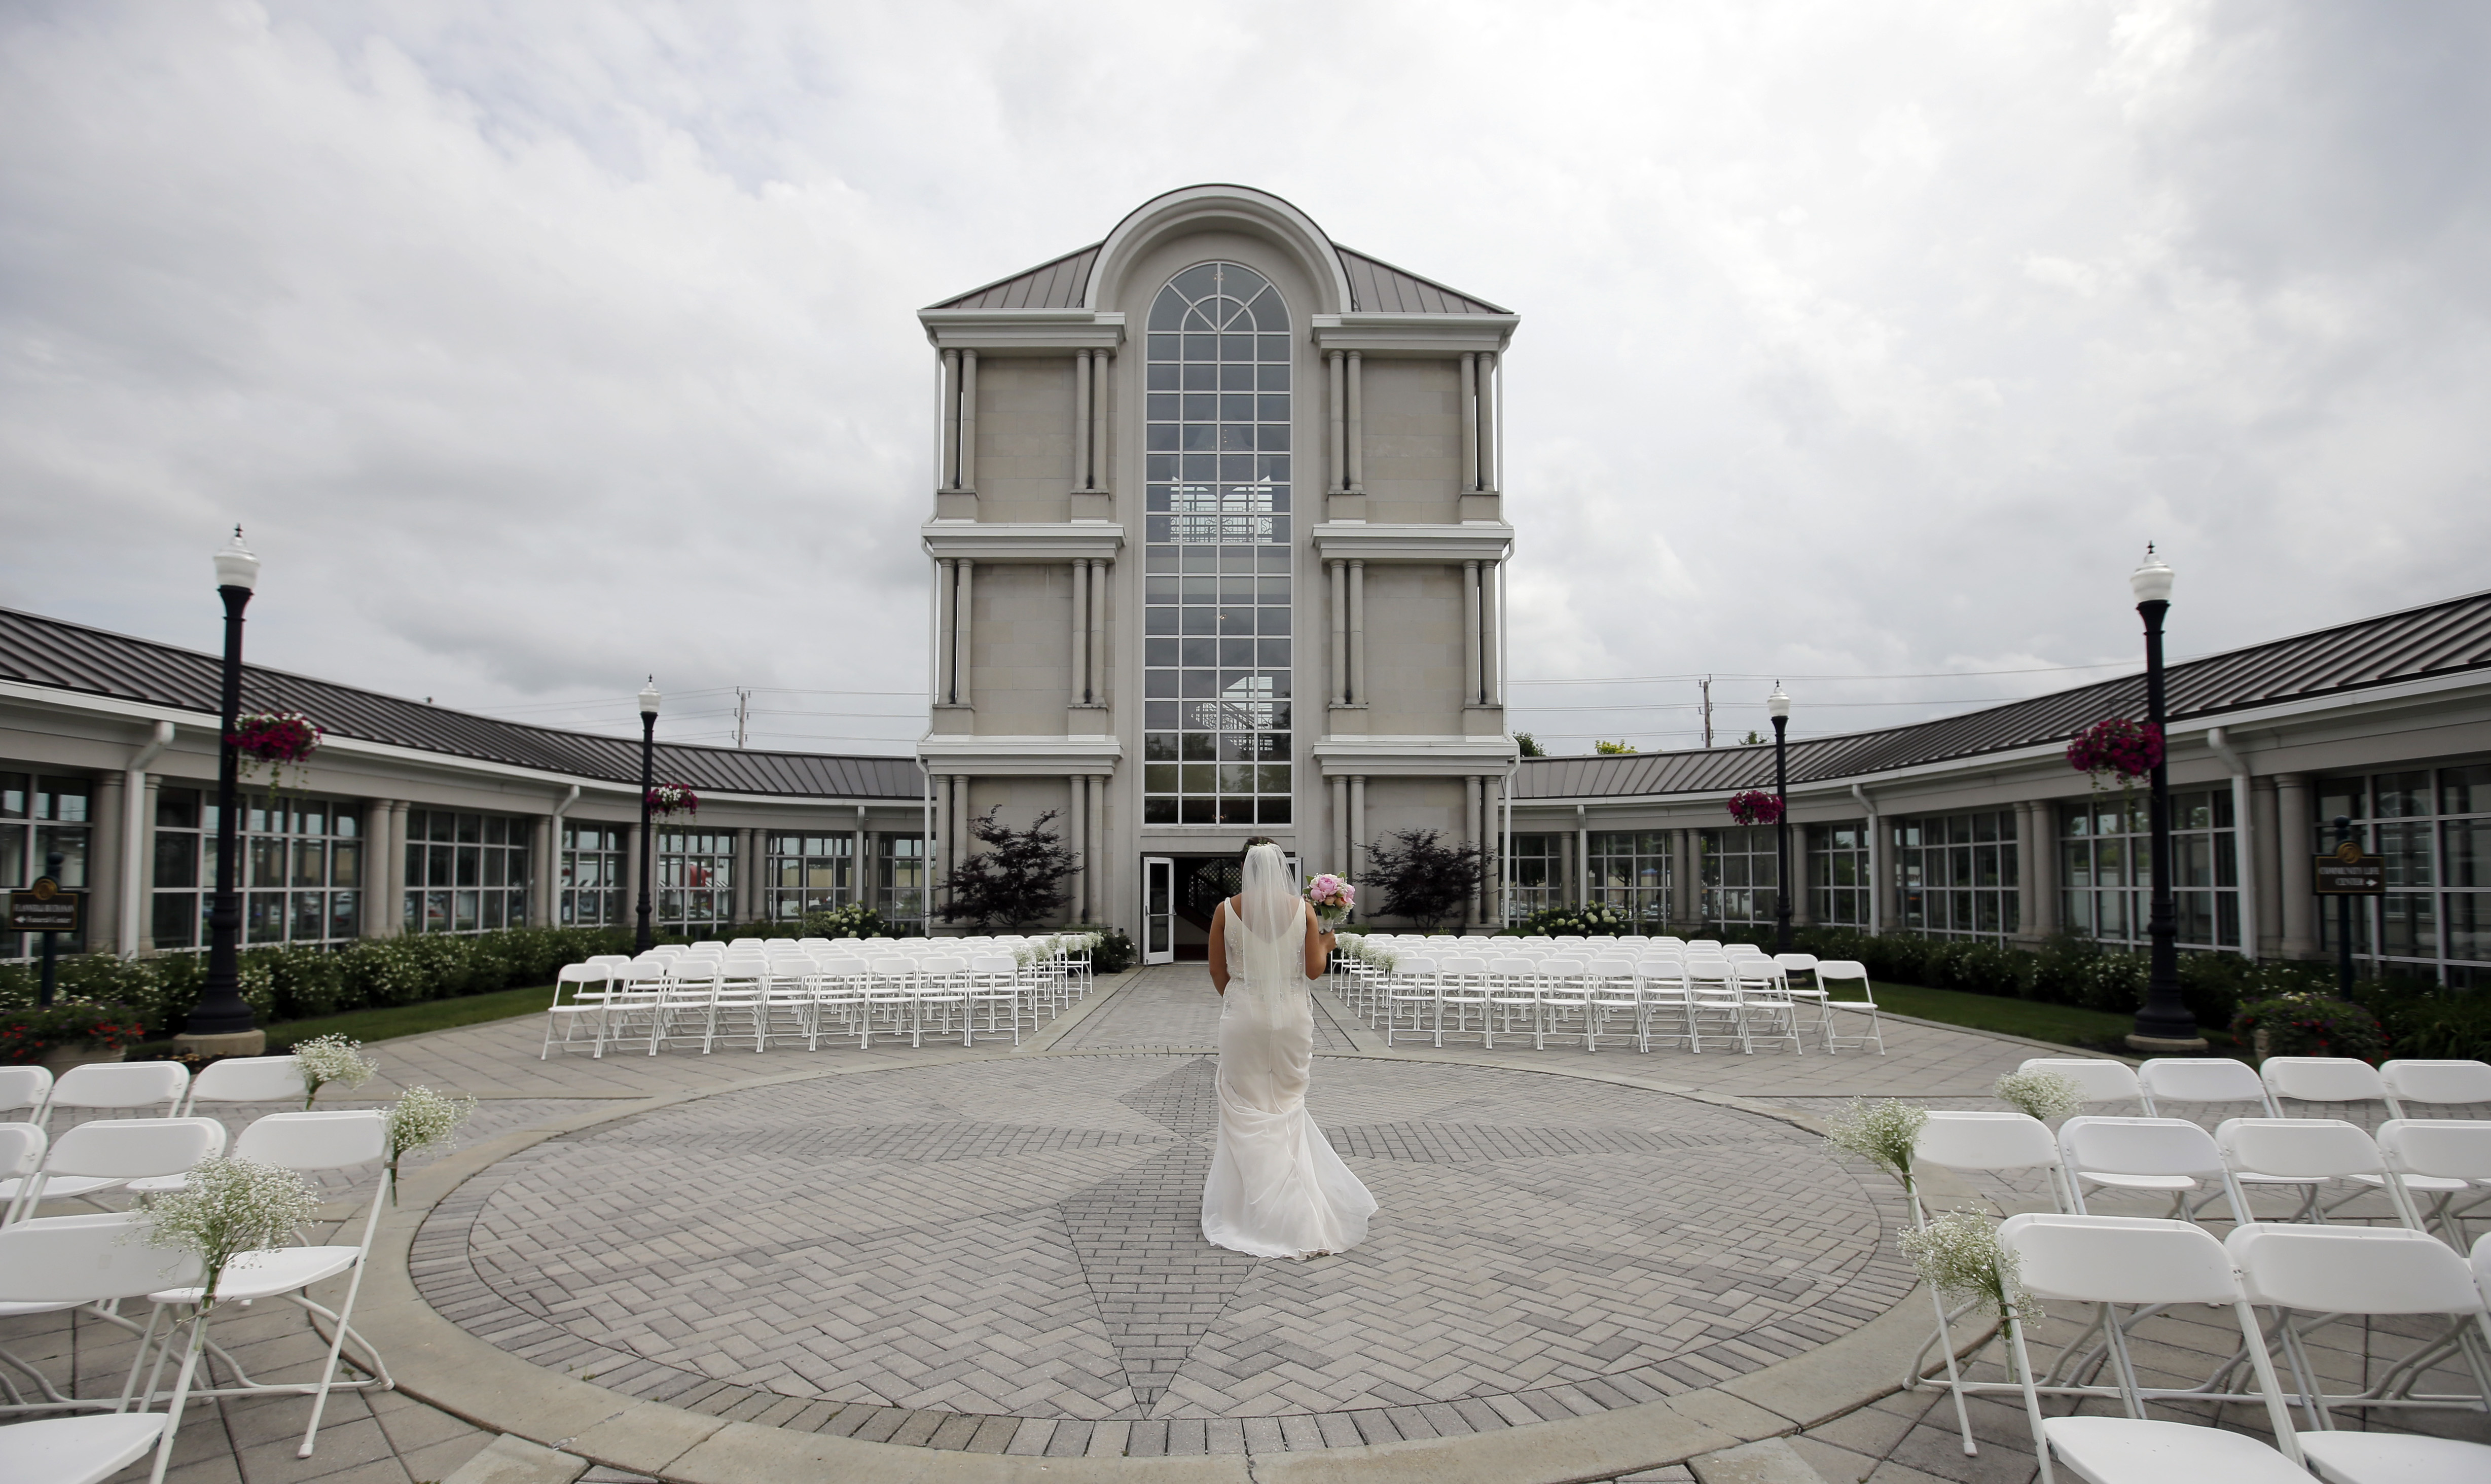 Danessa Molinder walks toward the Crystal Tower for photos before her wedding at the Community Life Center, which sits on cemetery land near a funeral home in Indianapolis.